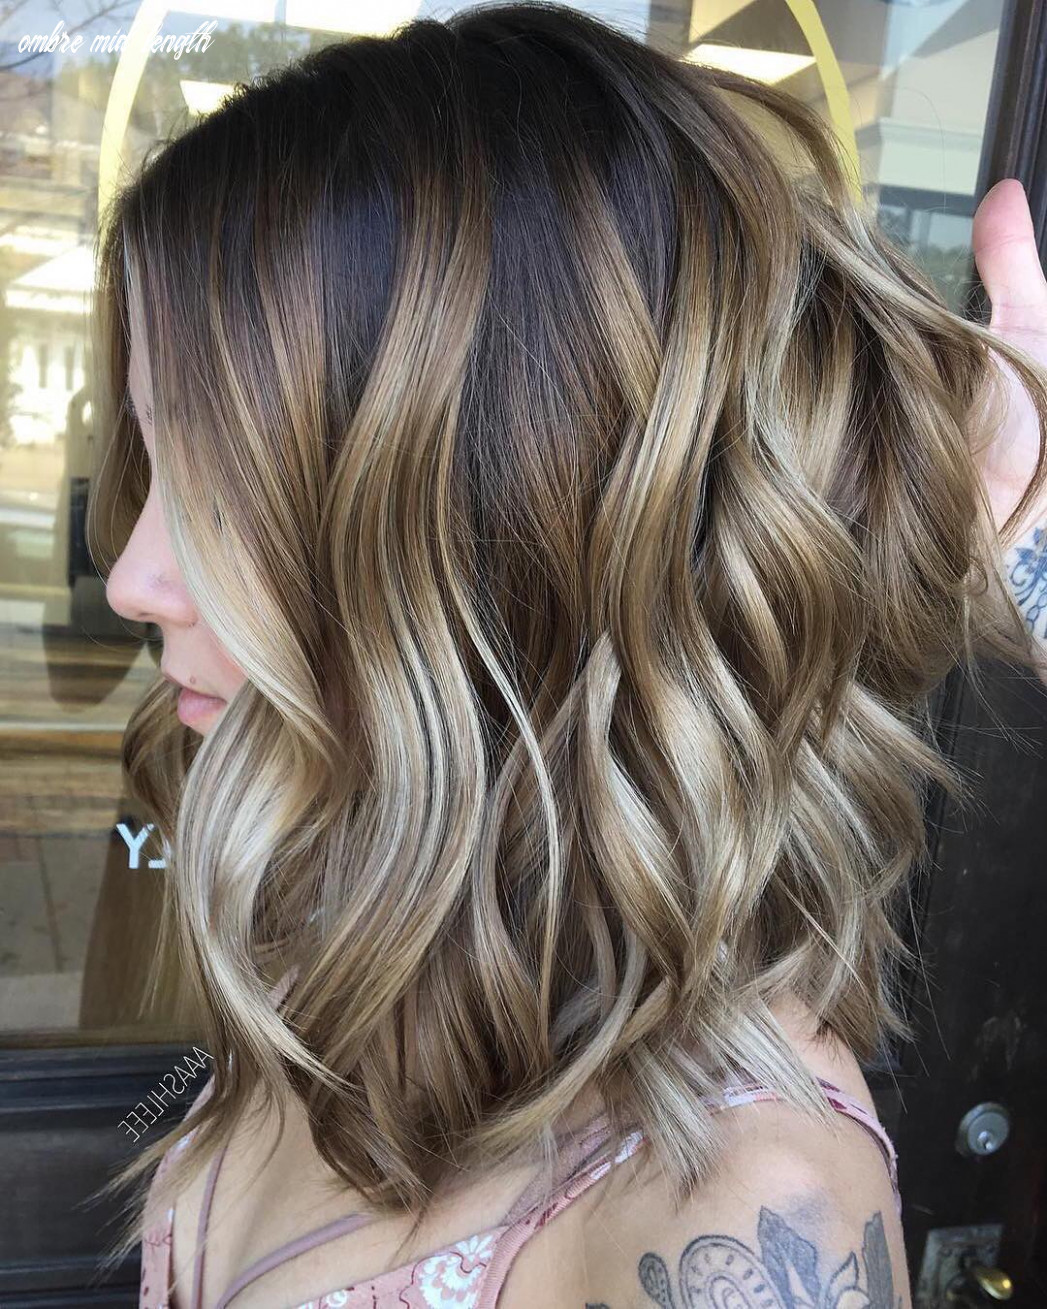 8 ombre balayage hairstyles for medium length hair, hair color 8 ombre mid length